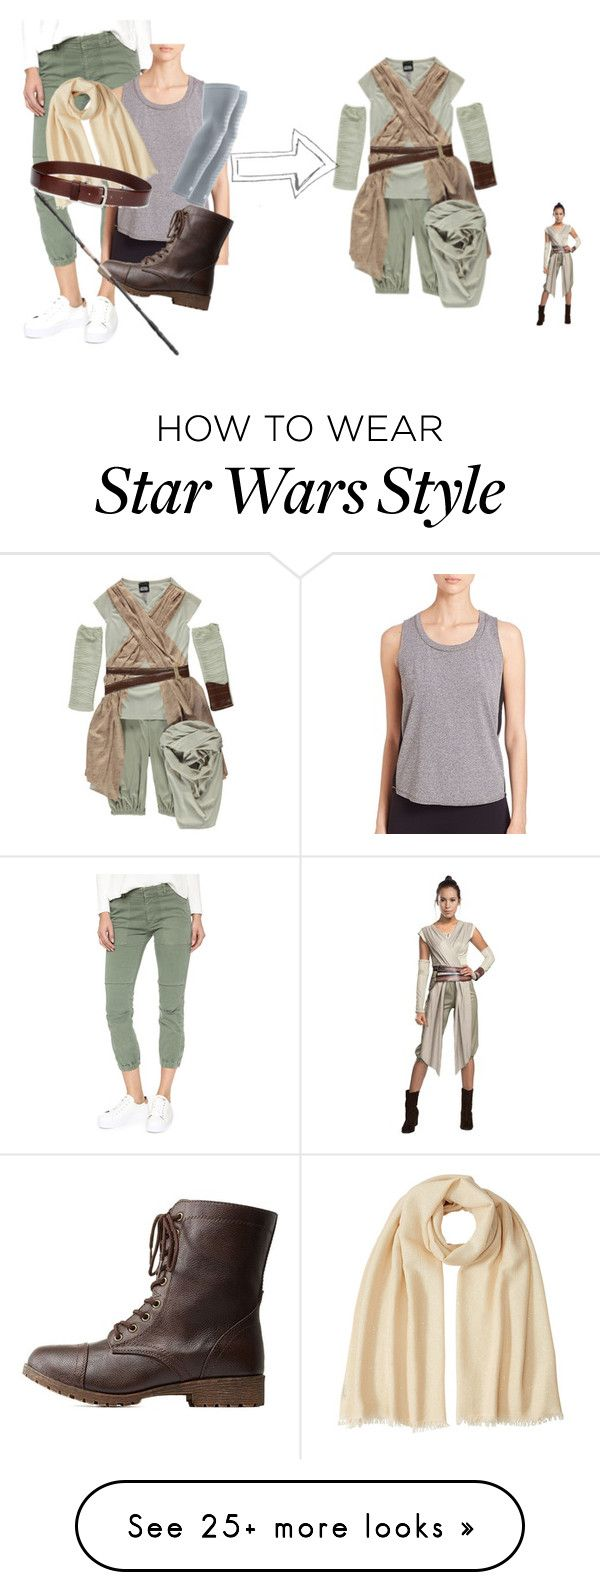 """DIY Rey from Star Wars Costume"" by princessvp03 on Polyvore featuring Nili Lotan, Elie Tahari, George, Under Armour, Brunello Cucinelli, HUGO, Bamboo and starwars"